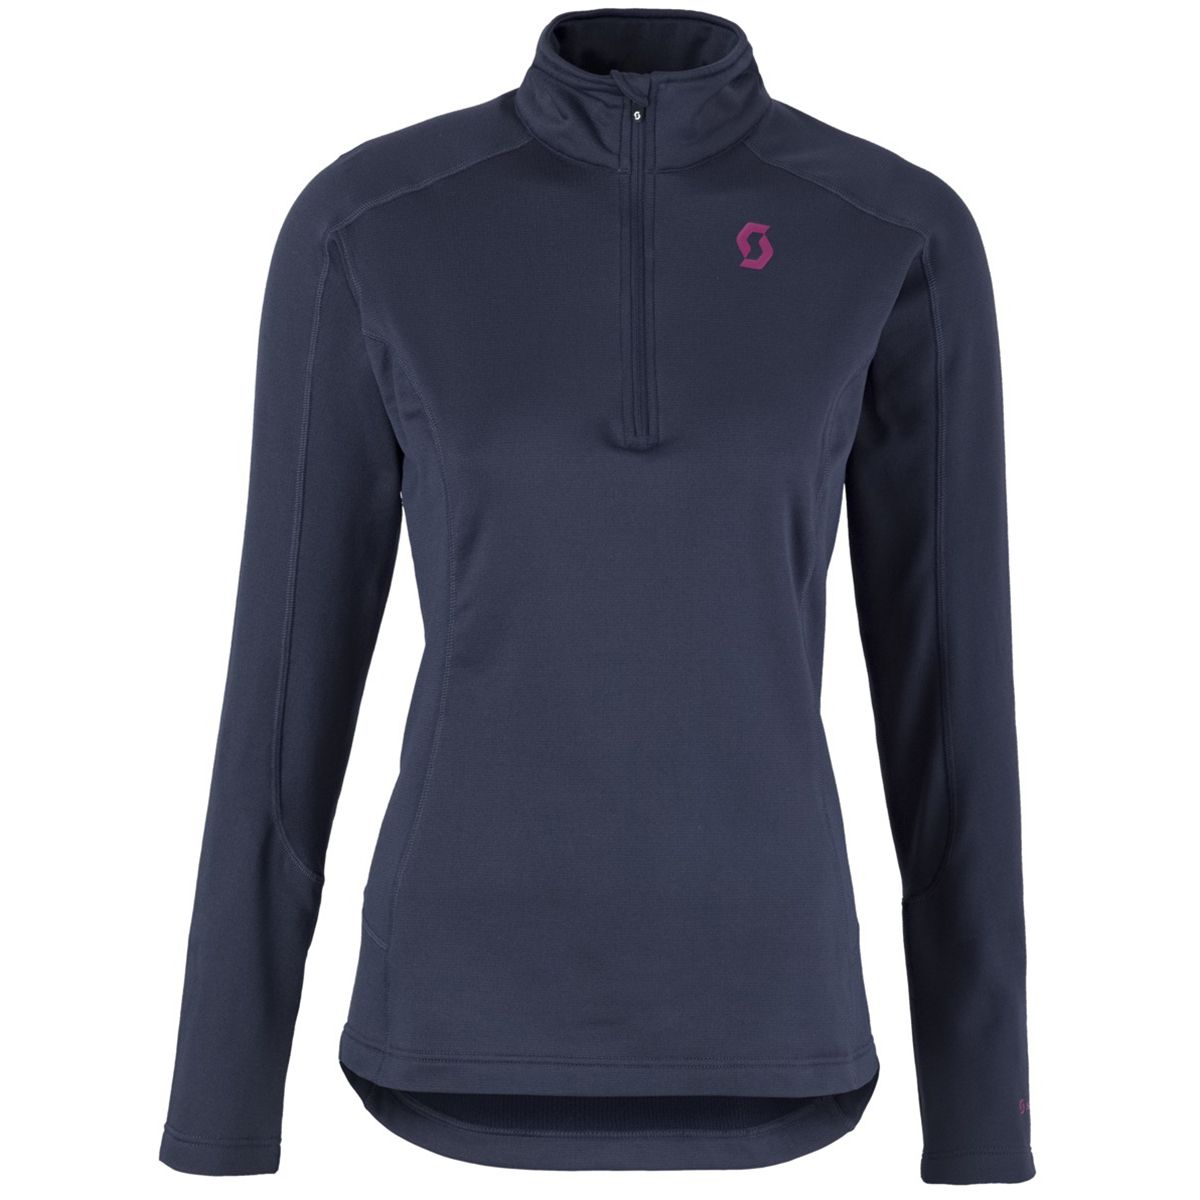 Scott Damen Light Defined Pullover (Größe XS, Blau) | Longsleeves Funktion > Damen